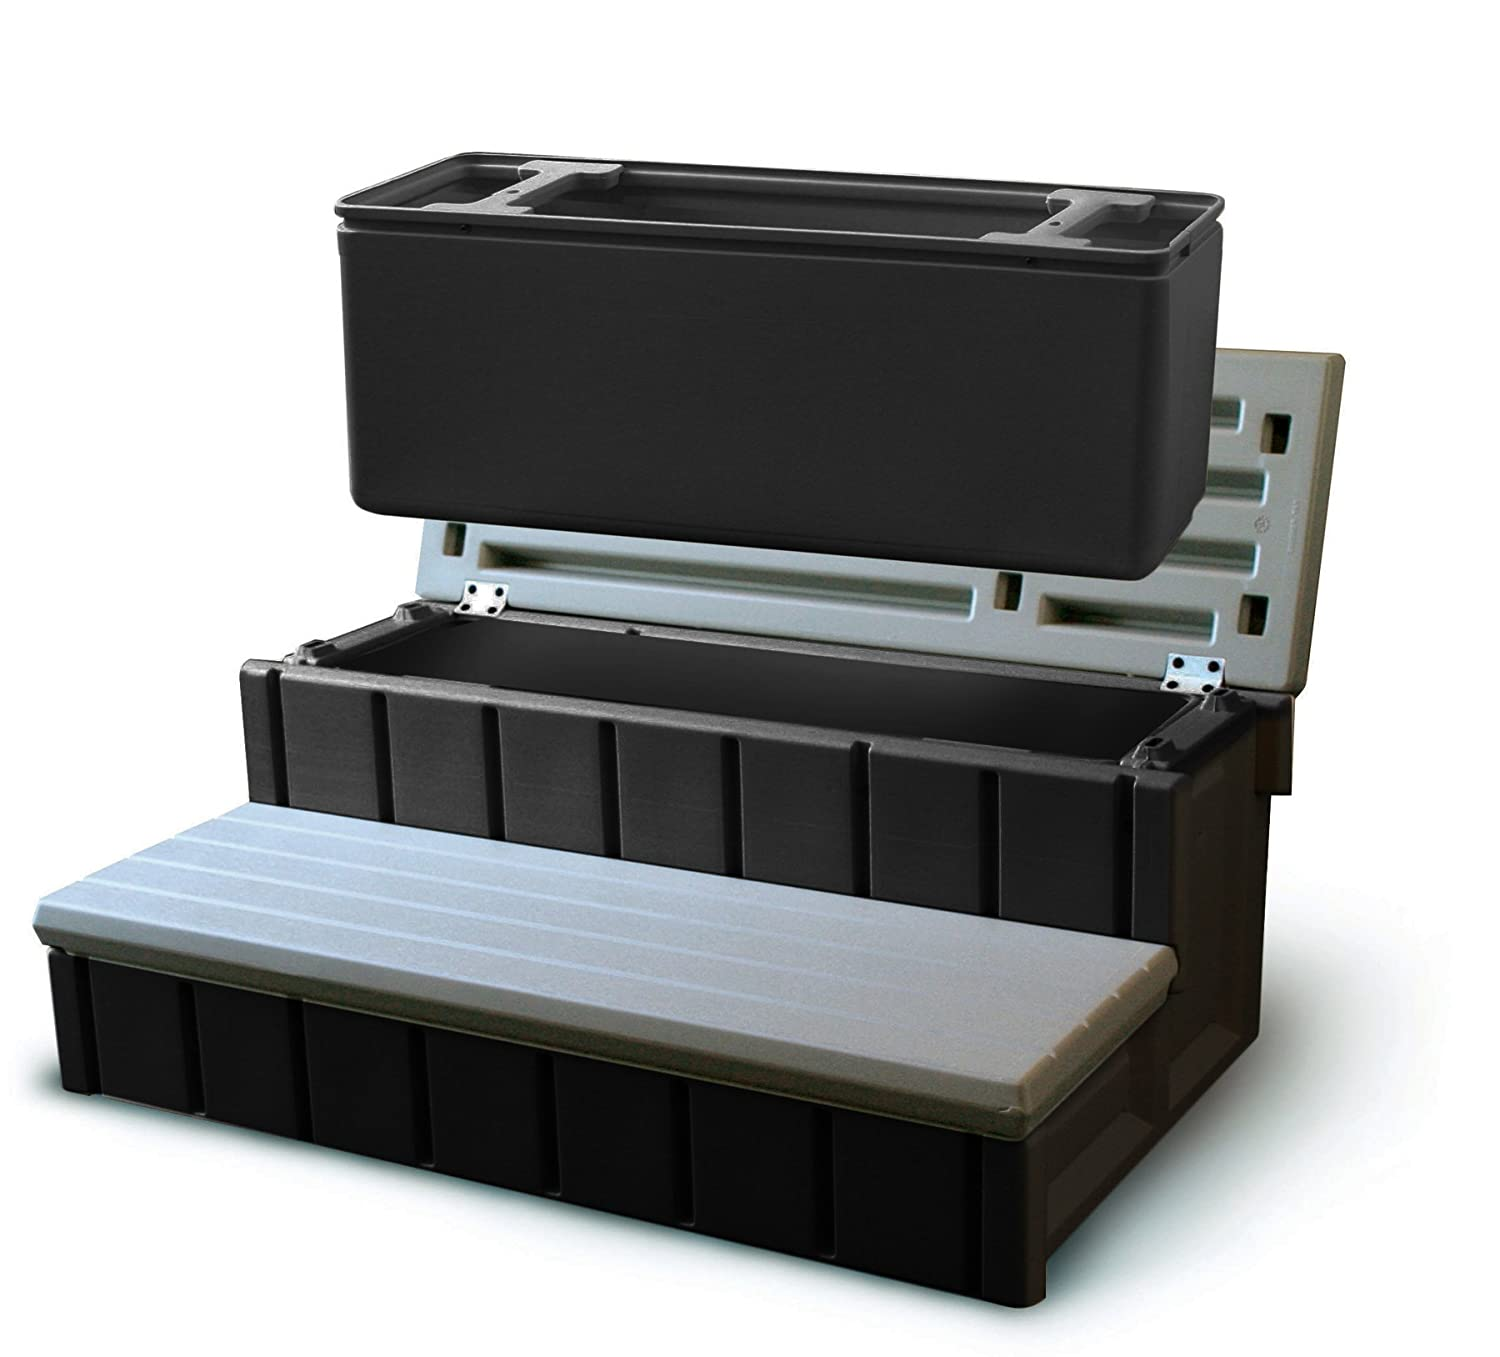 Confer NP5653 Plastics Spa Step with Storage, Gray